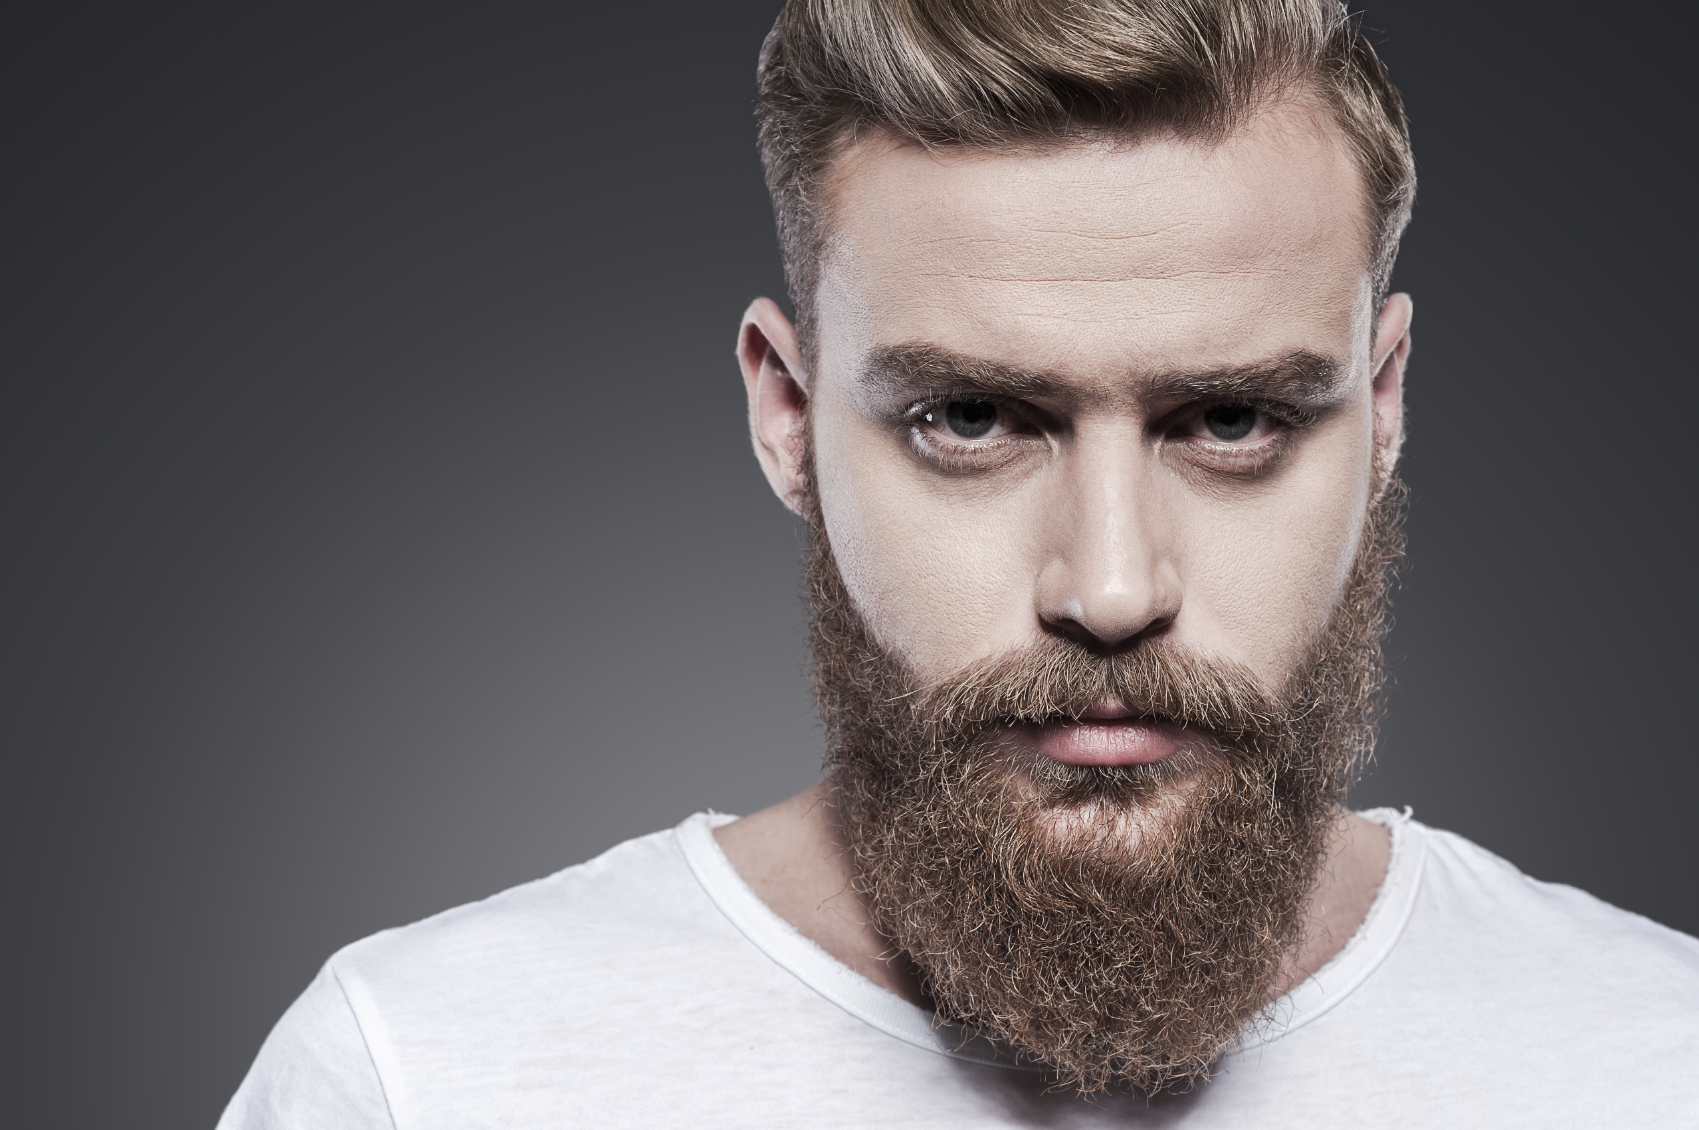 Beard Trimming Products